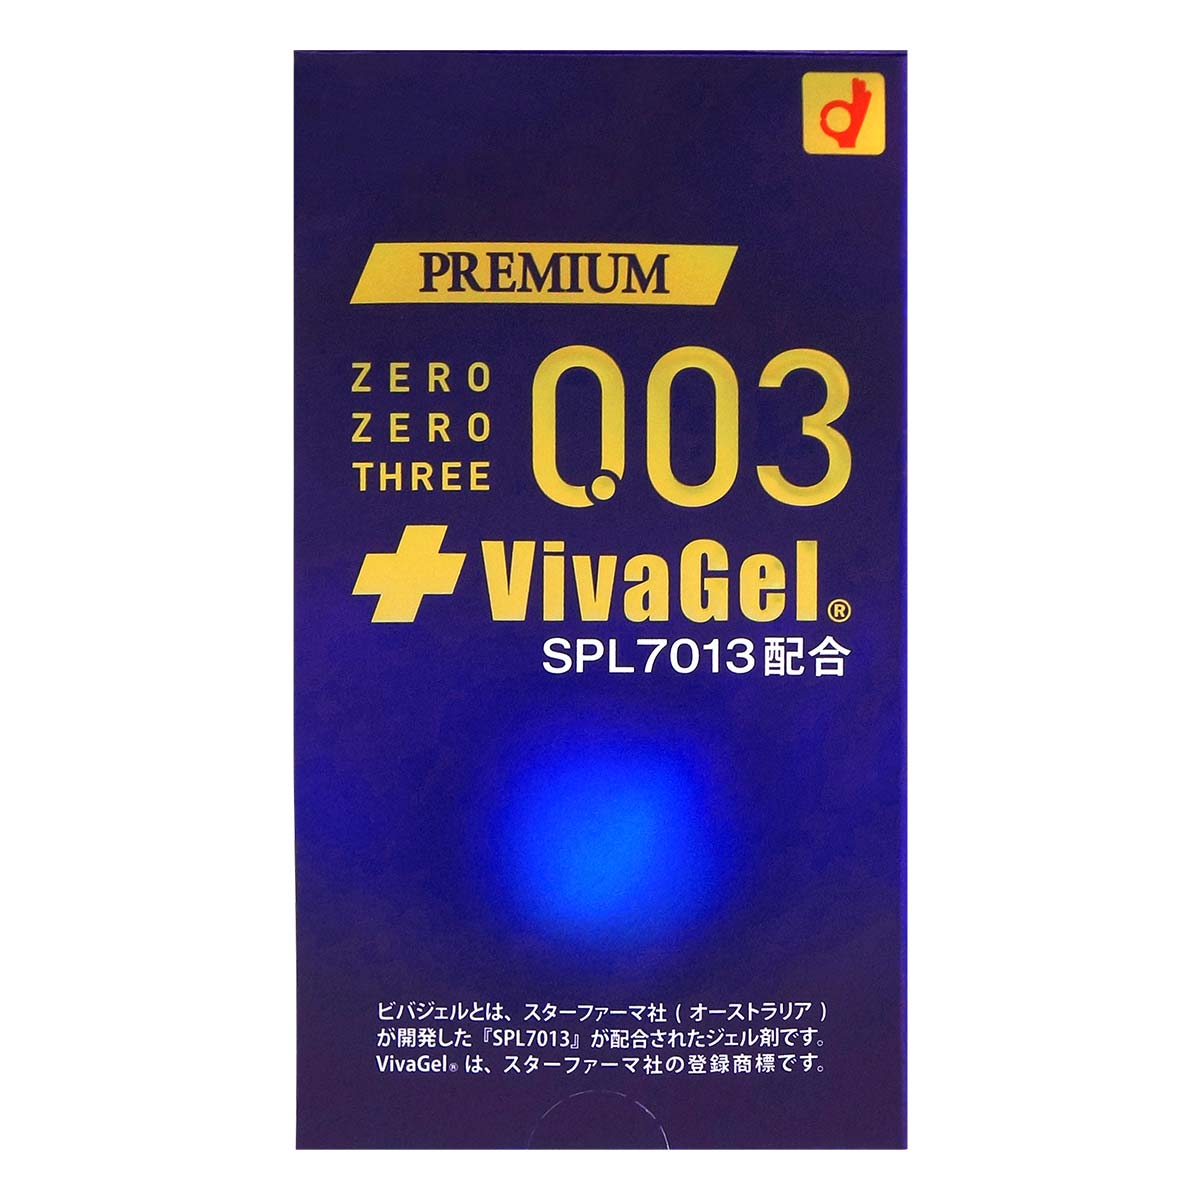 Zero Zero Three 0.03 Vivagel (Japan Edition) 10's Pack Latex Condom